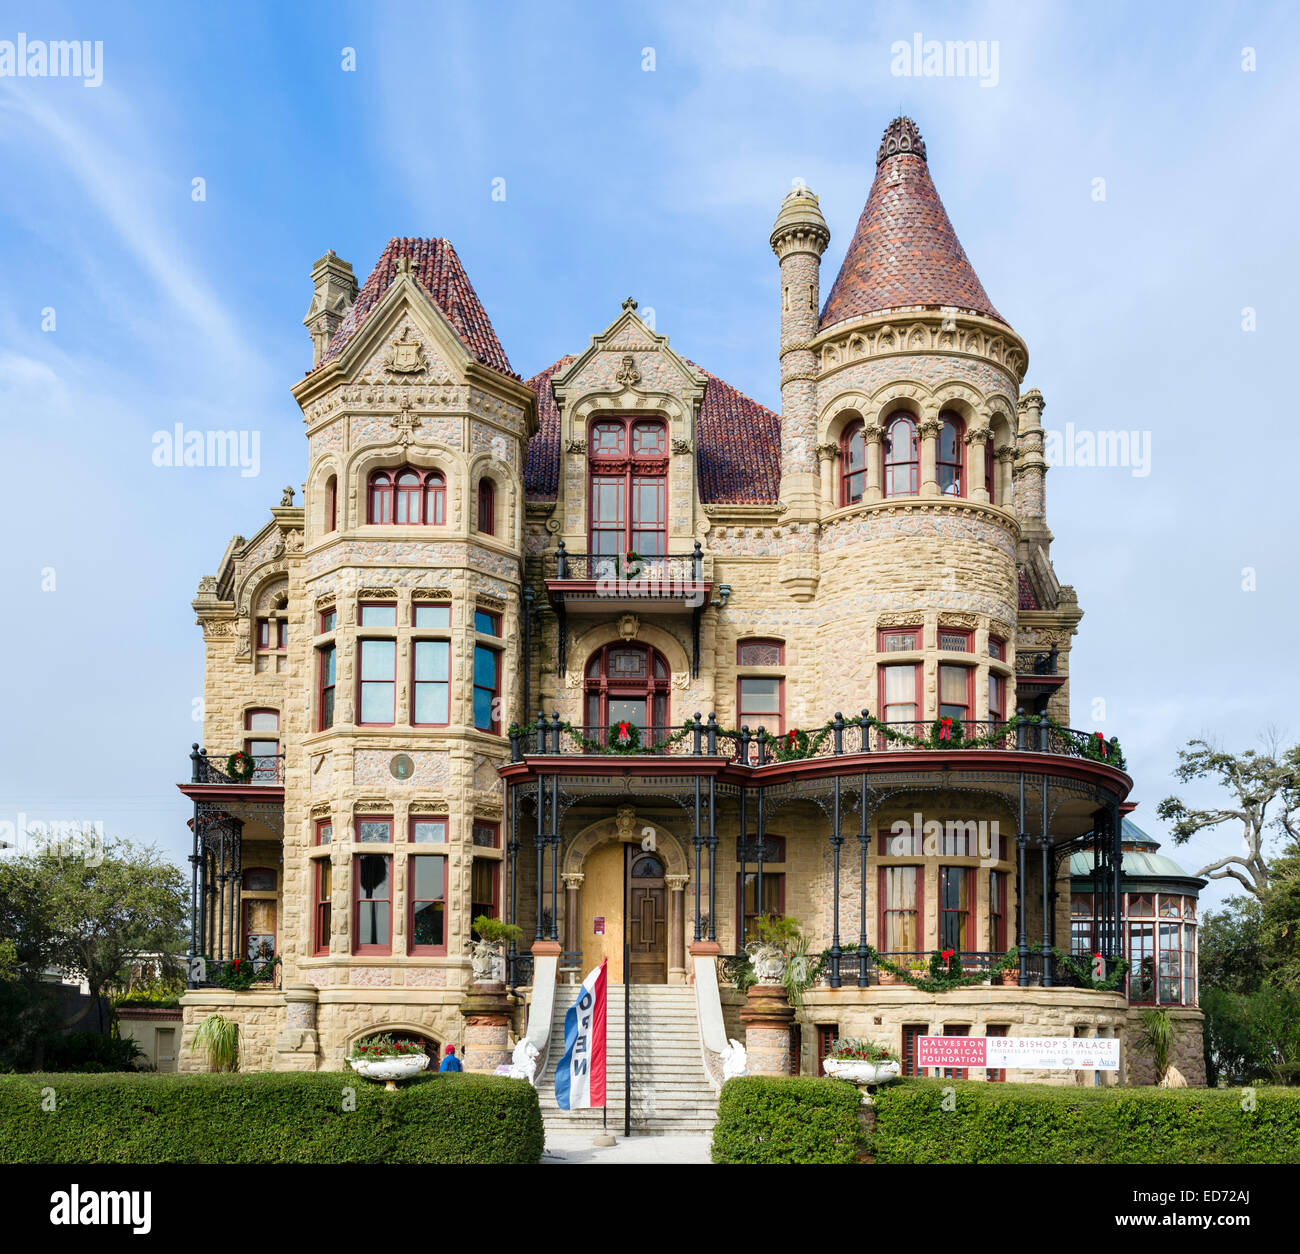 A Complete Tour Of A Victorian Style Mansion: The Bishop's Palace Or Gresham's Castle, An Old Victorian